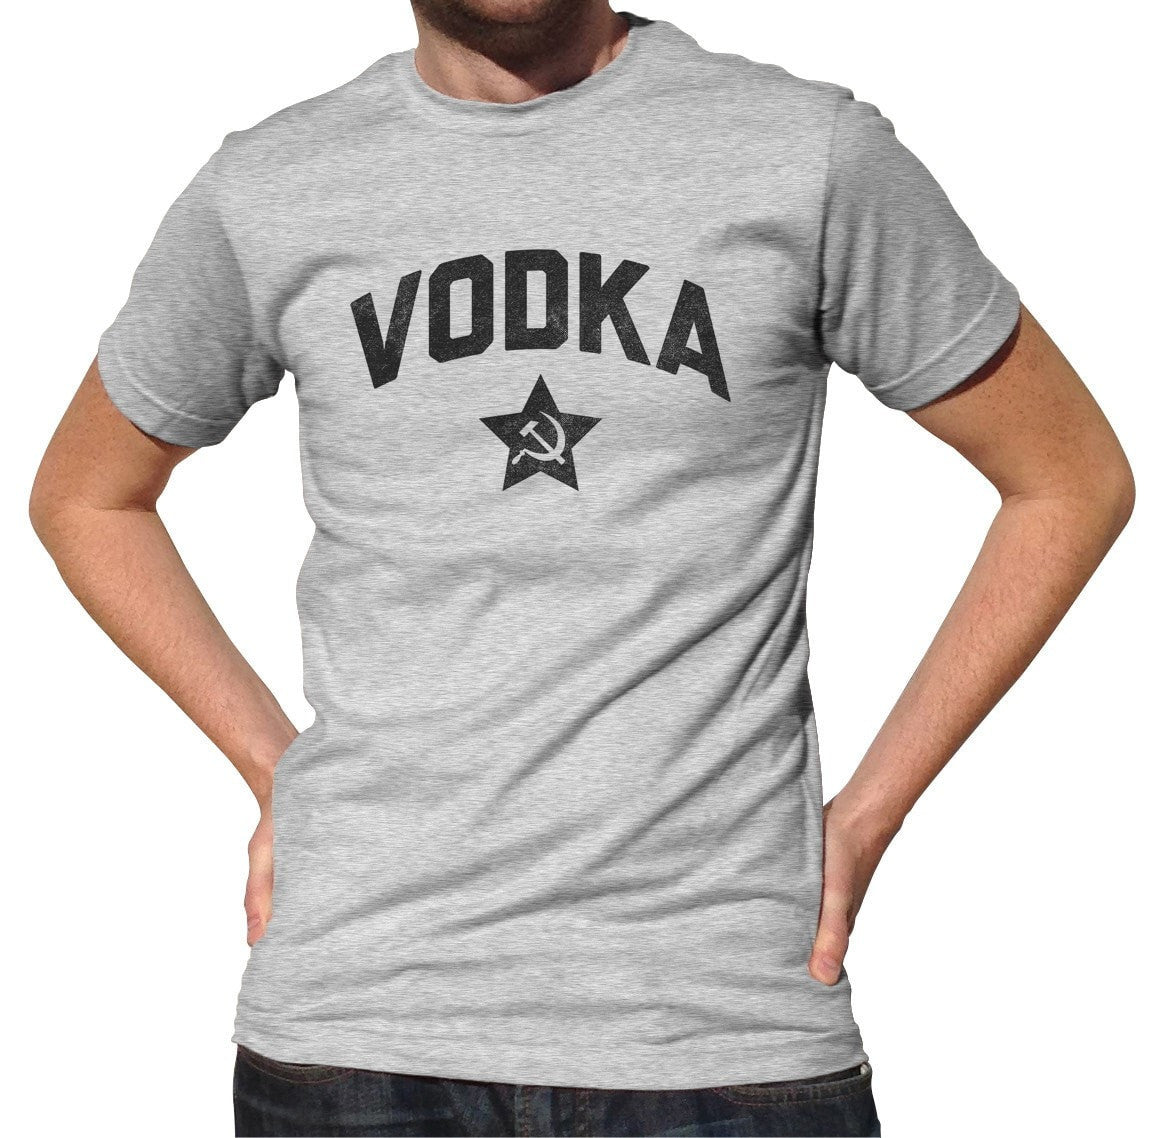 Men's Team Vodka T-Shirt Cool Funny Drinking